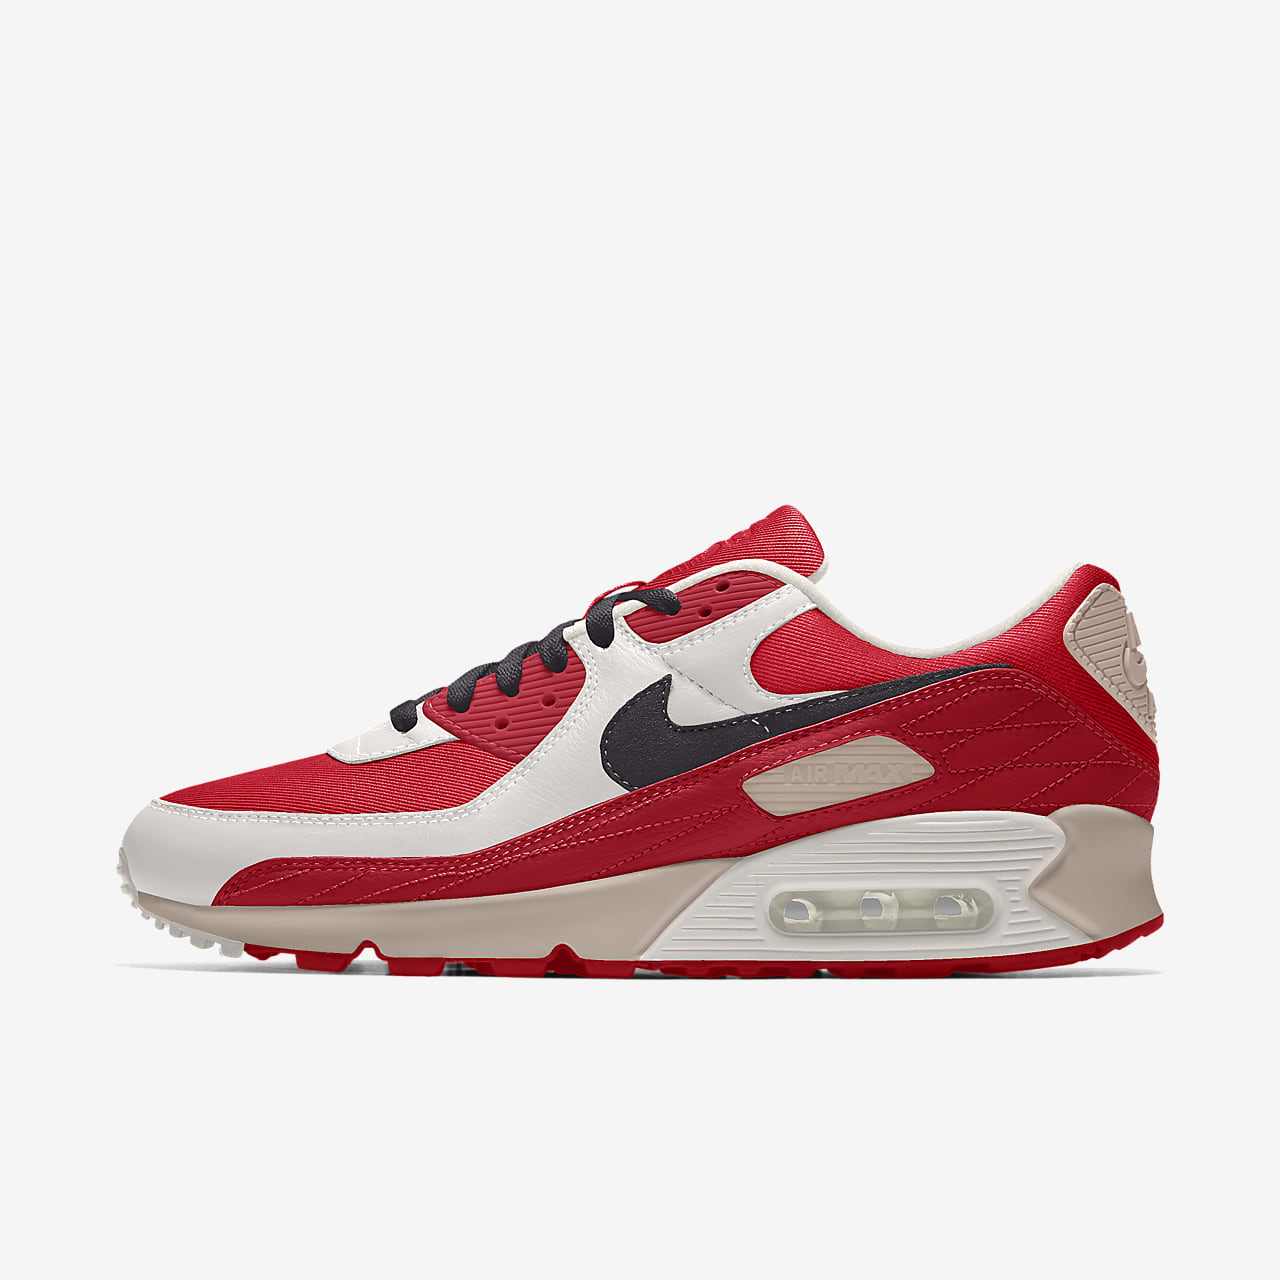 Chaussure personnalisable Nike Air Max 90 Unlocked By You pour Homme